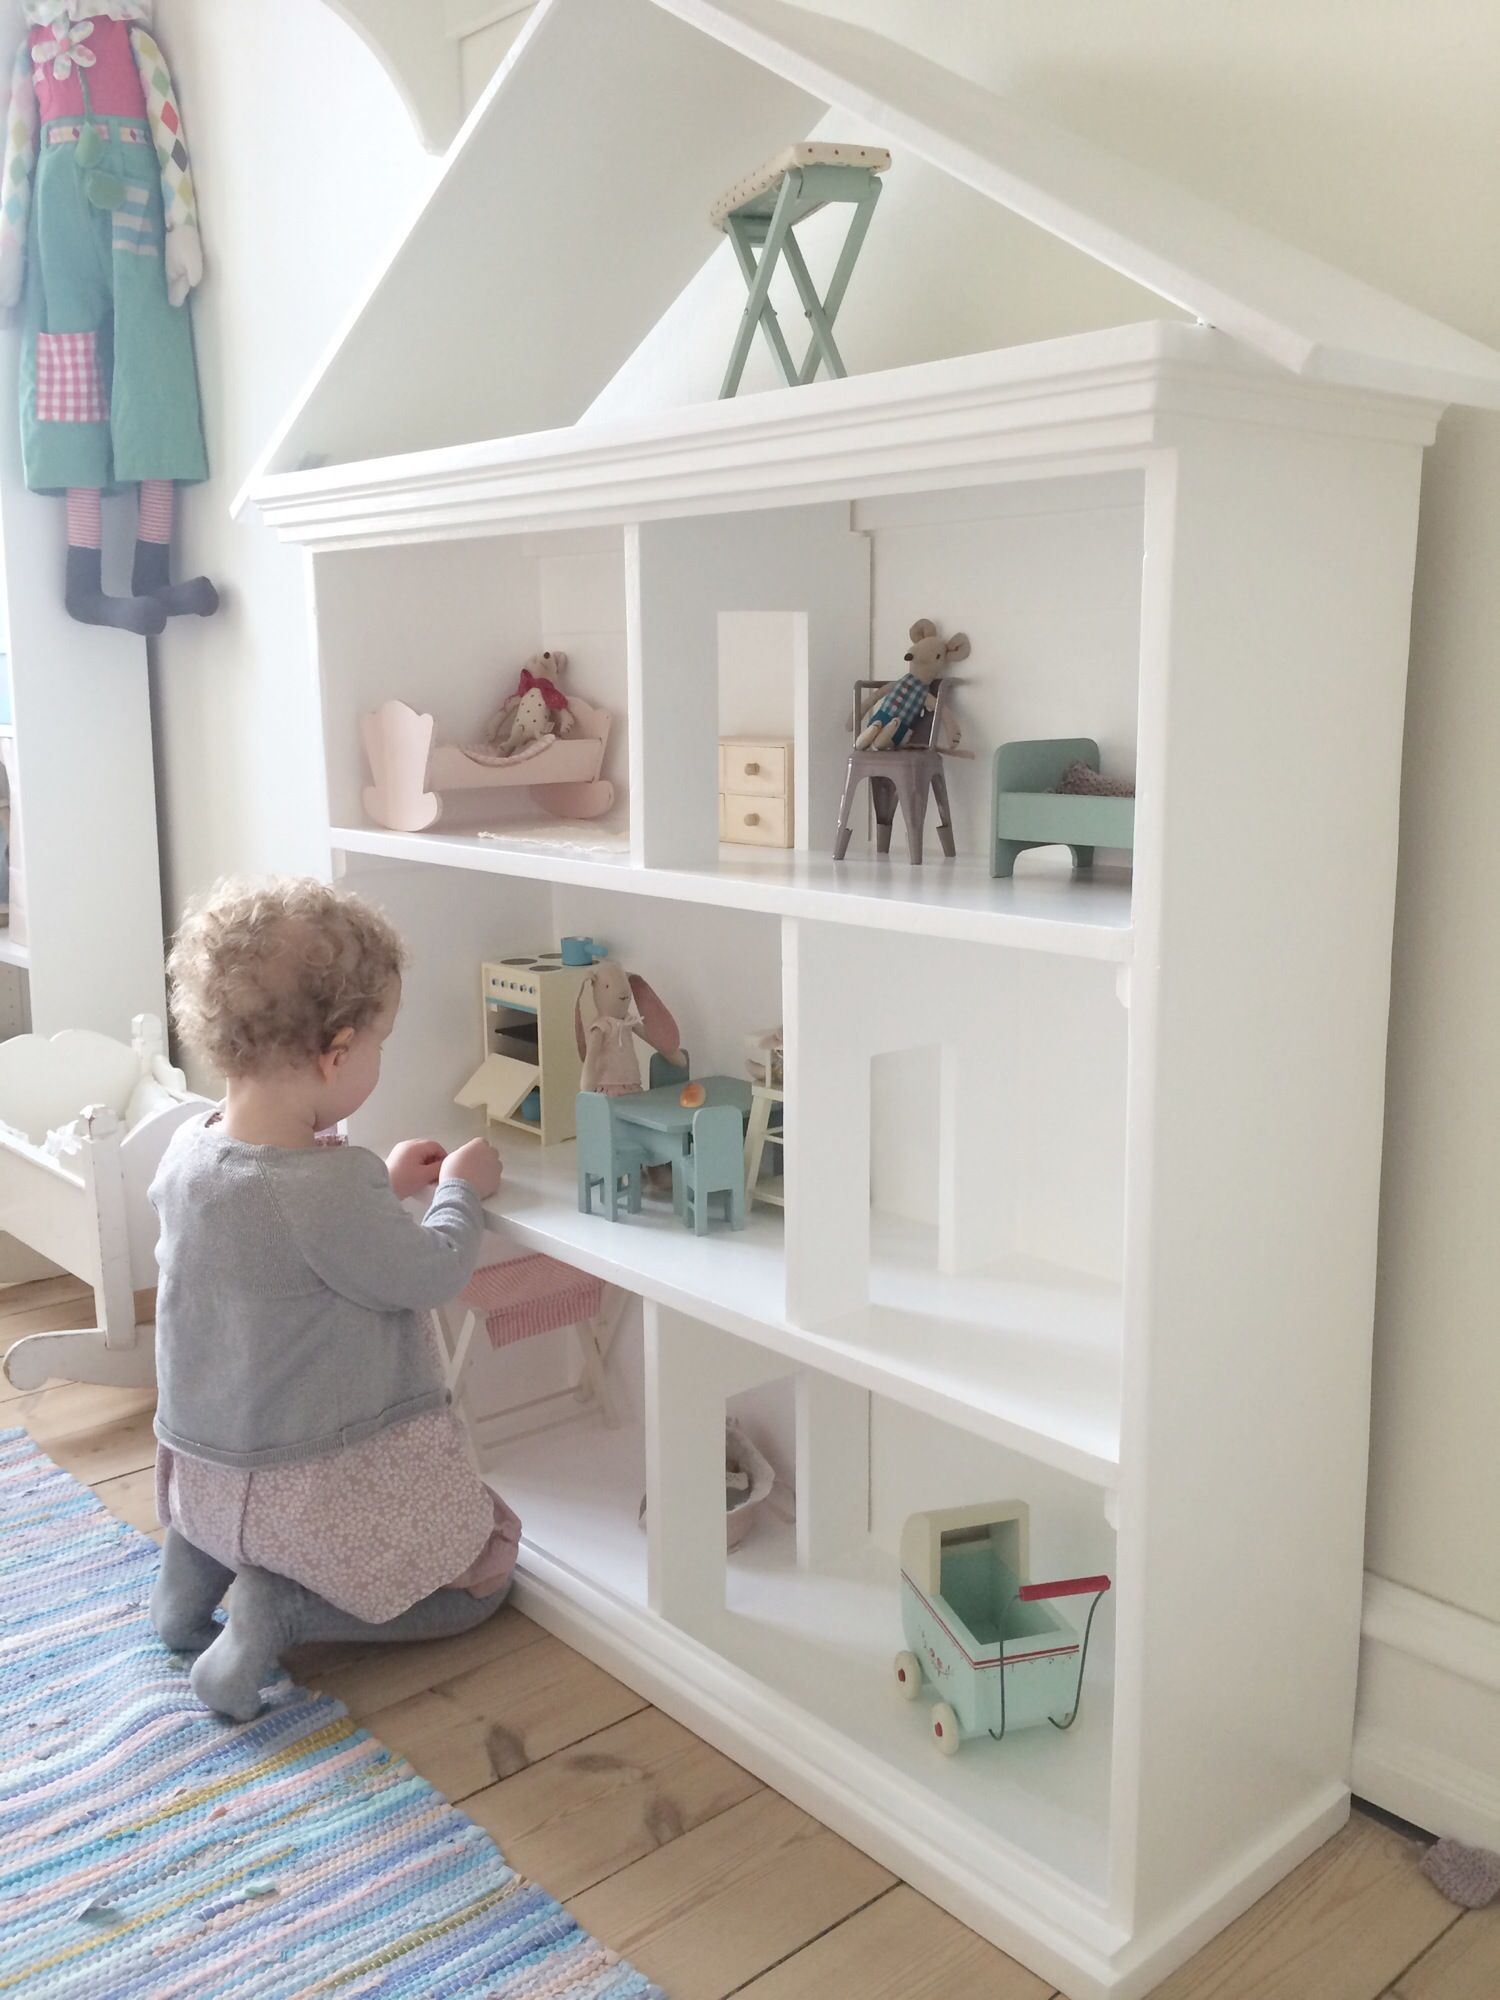 Dollhouse for Maileg Bunnies, Rabbits and mouse. Girls playroom #playrooms #kidsrooms #playtime Find more inspirations at www.circu.net